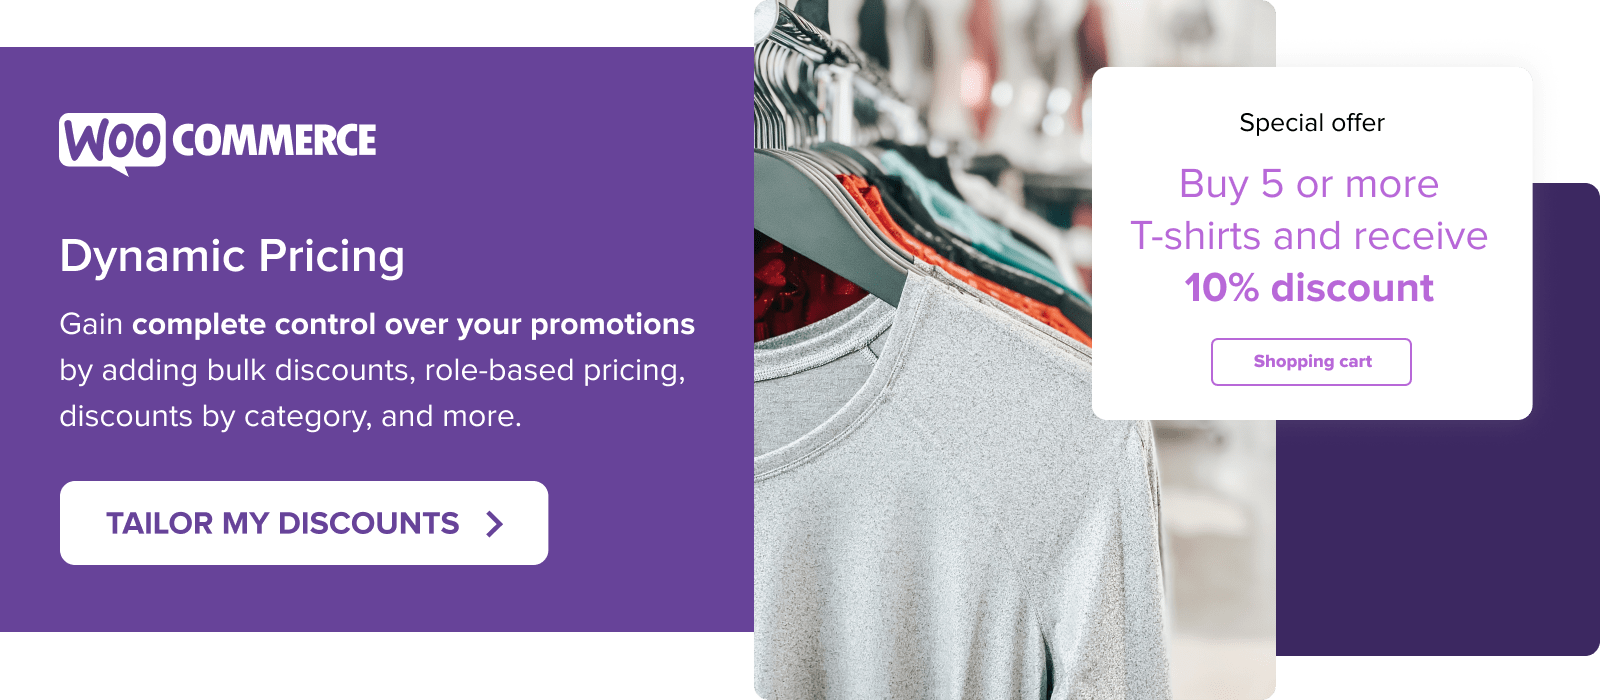 Run tailored sales and promotions with the Dynamic Pricing extension